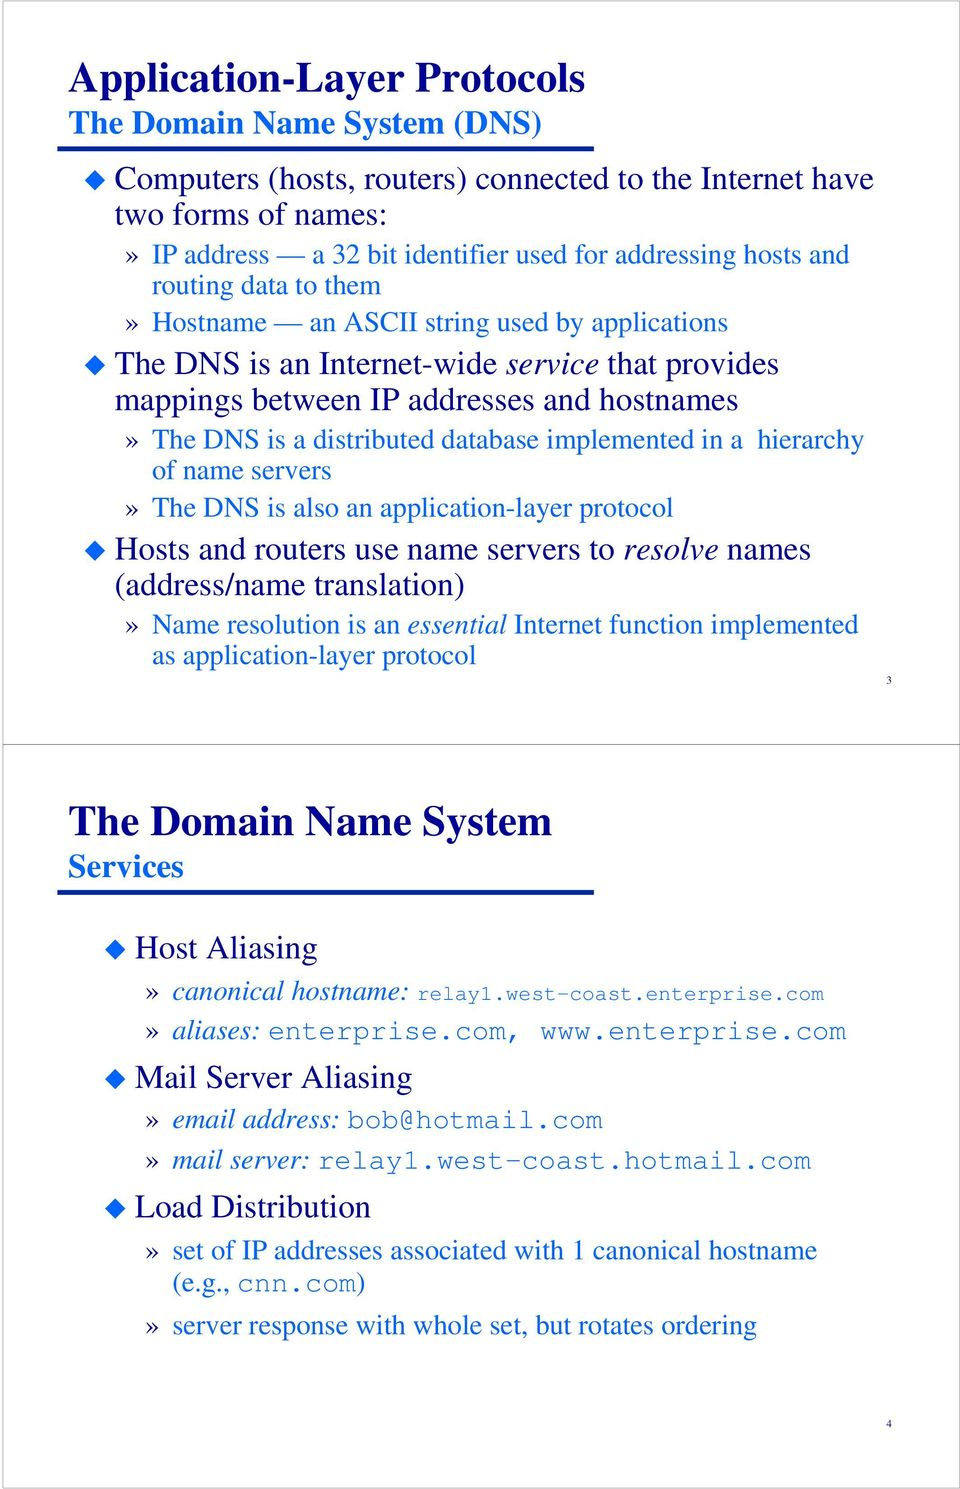 implemented in a hierarchy of name servers» The DNS is also an application-layer protocol Hosts and routers use name servers to resolve names (address/name translation)» Name resolution is an